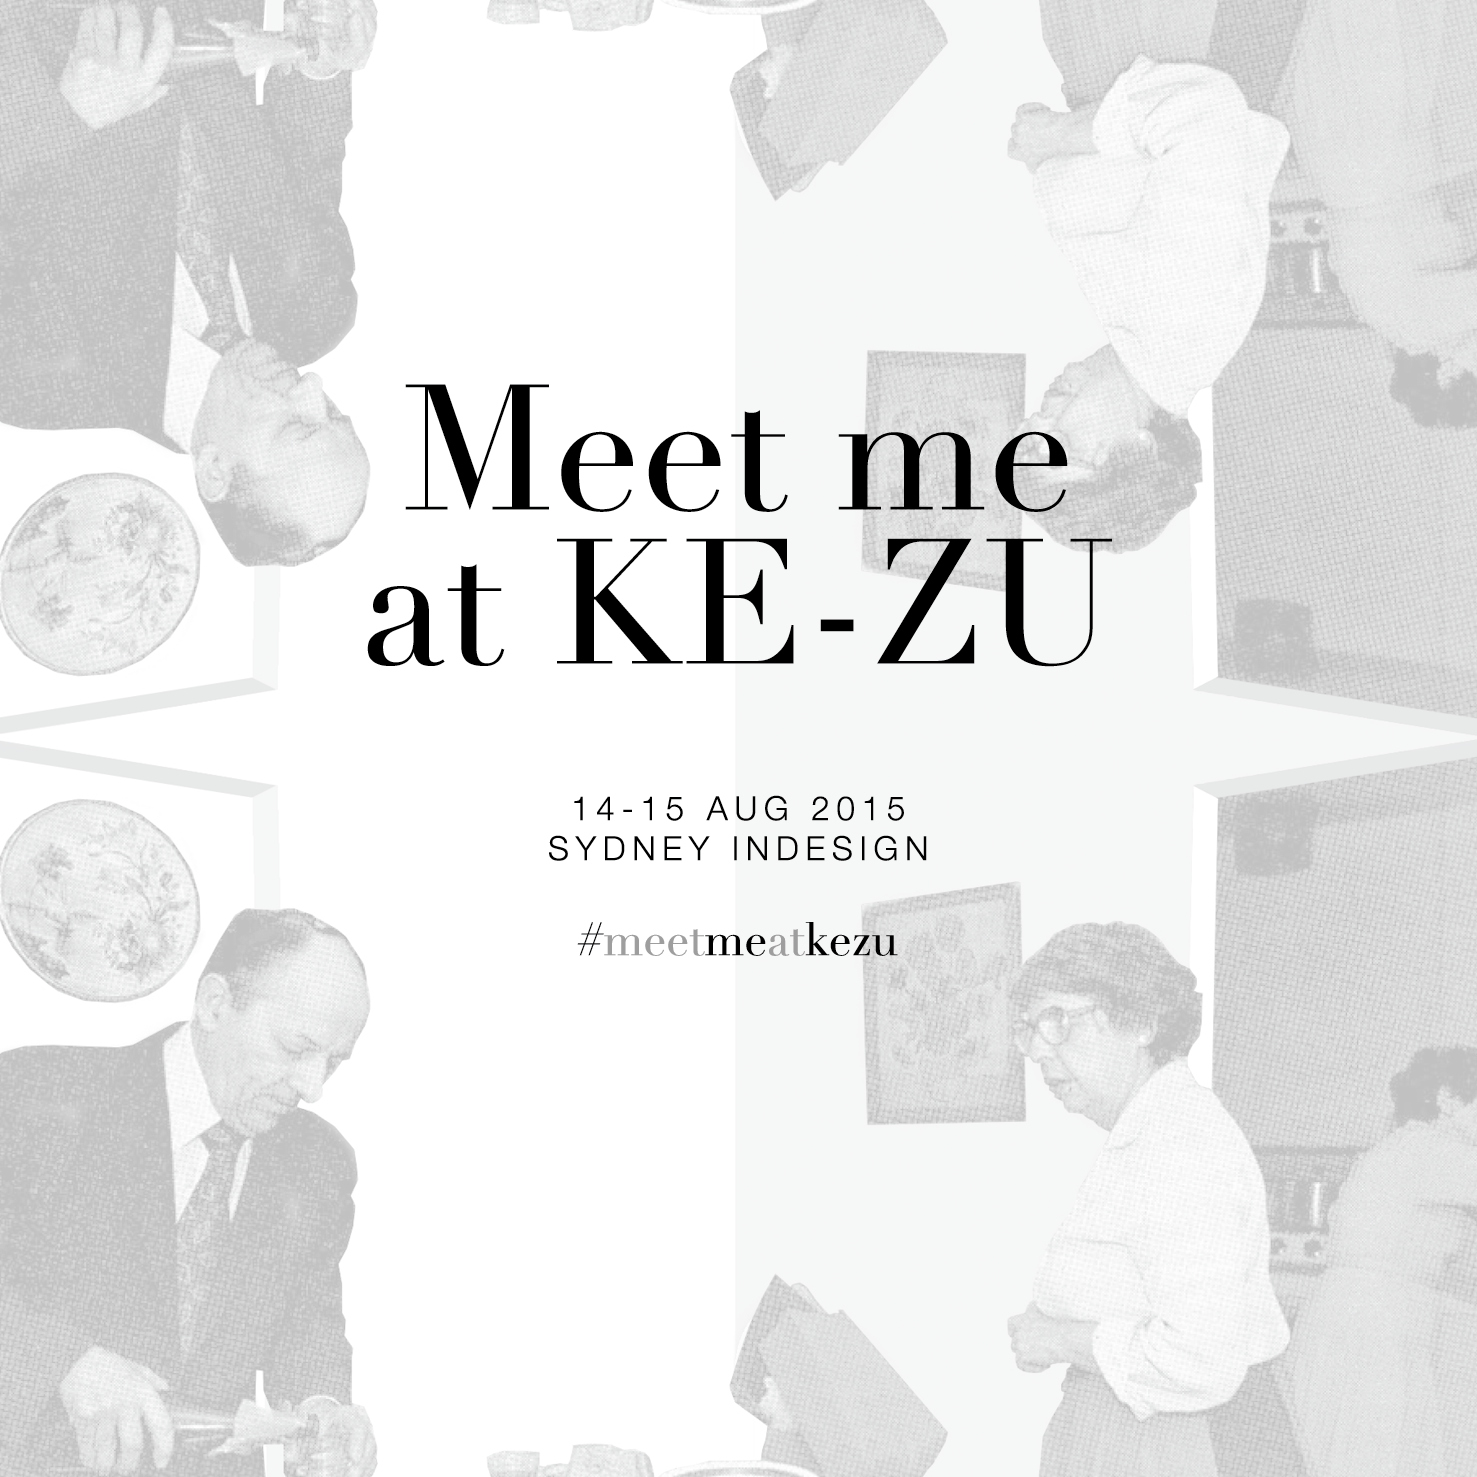 Meet me at KE-ZU ...